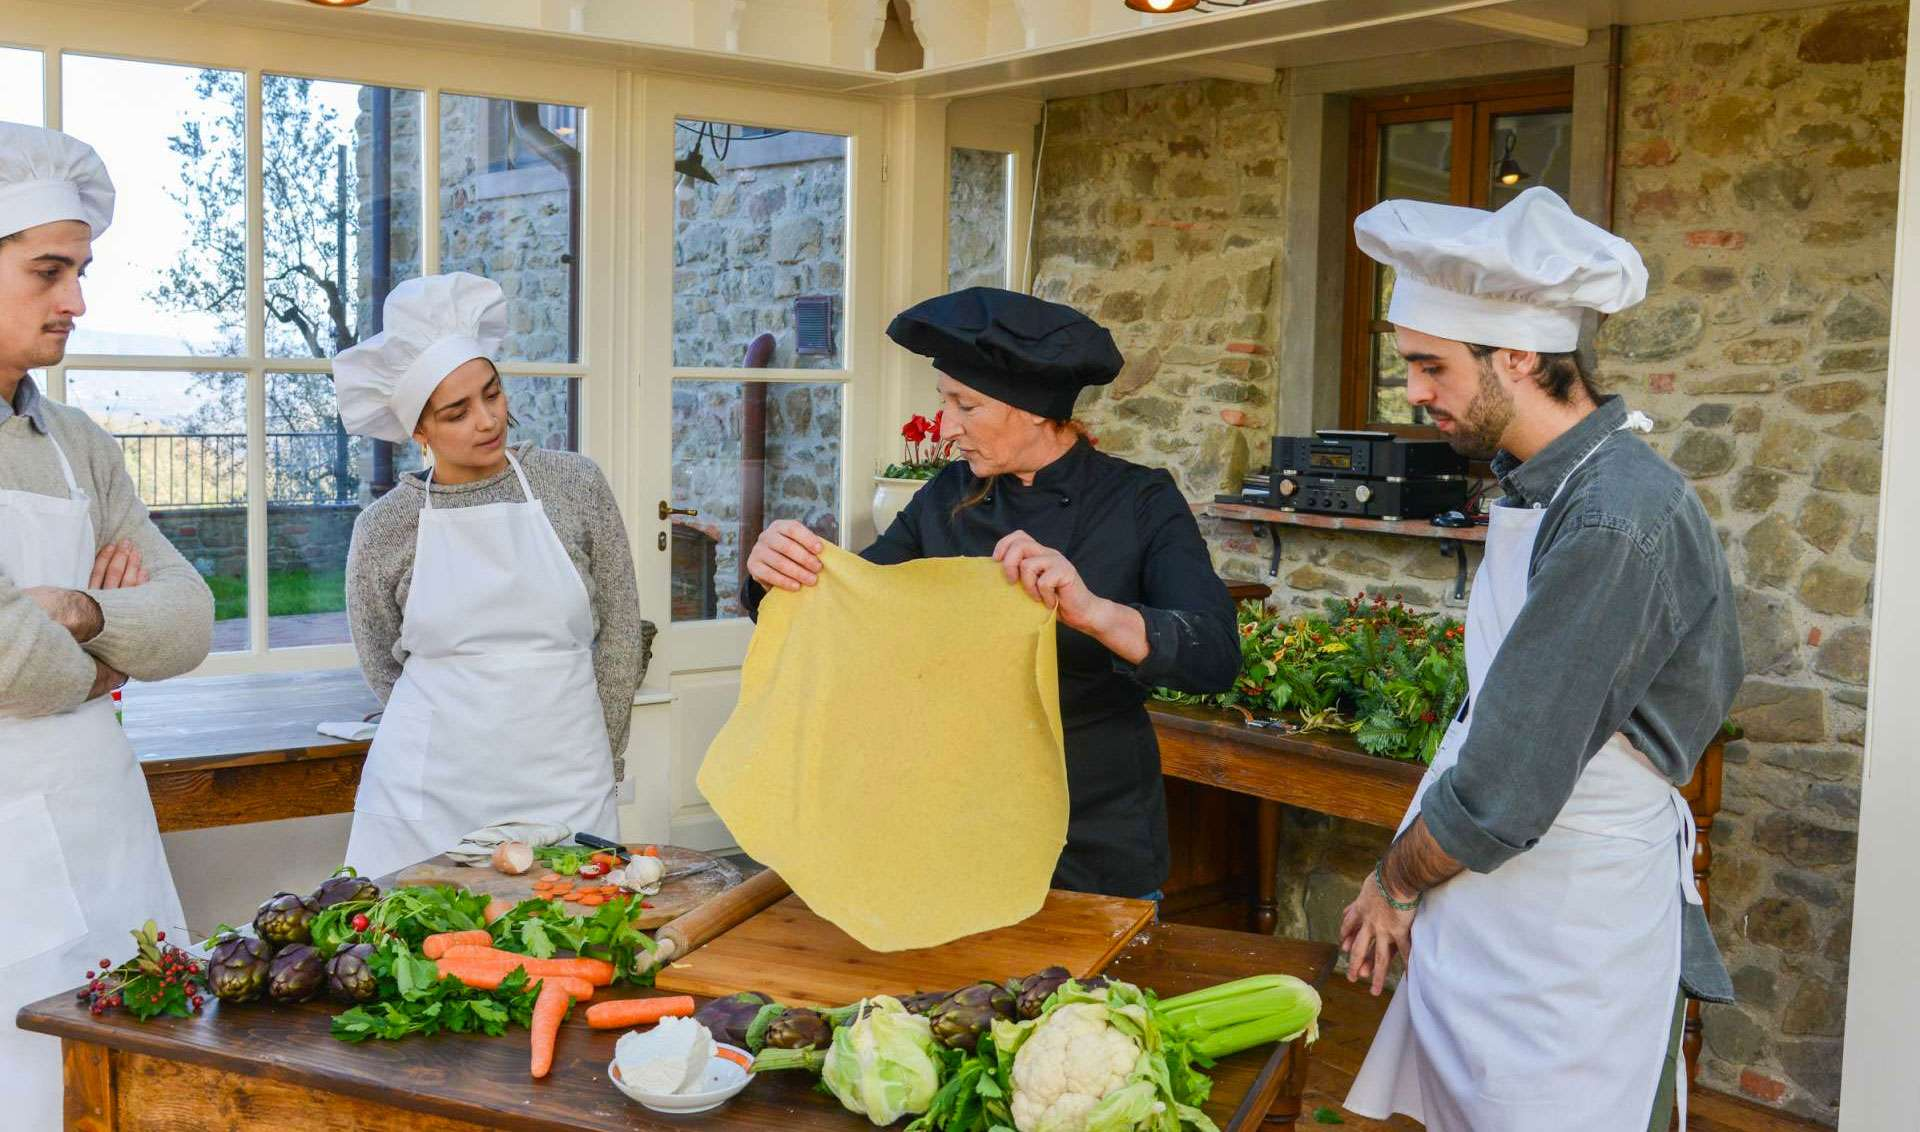 Cooking Classes in Italy: 5 Villas in Tuscany with Culinary Experiences